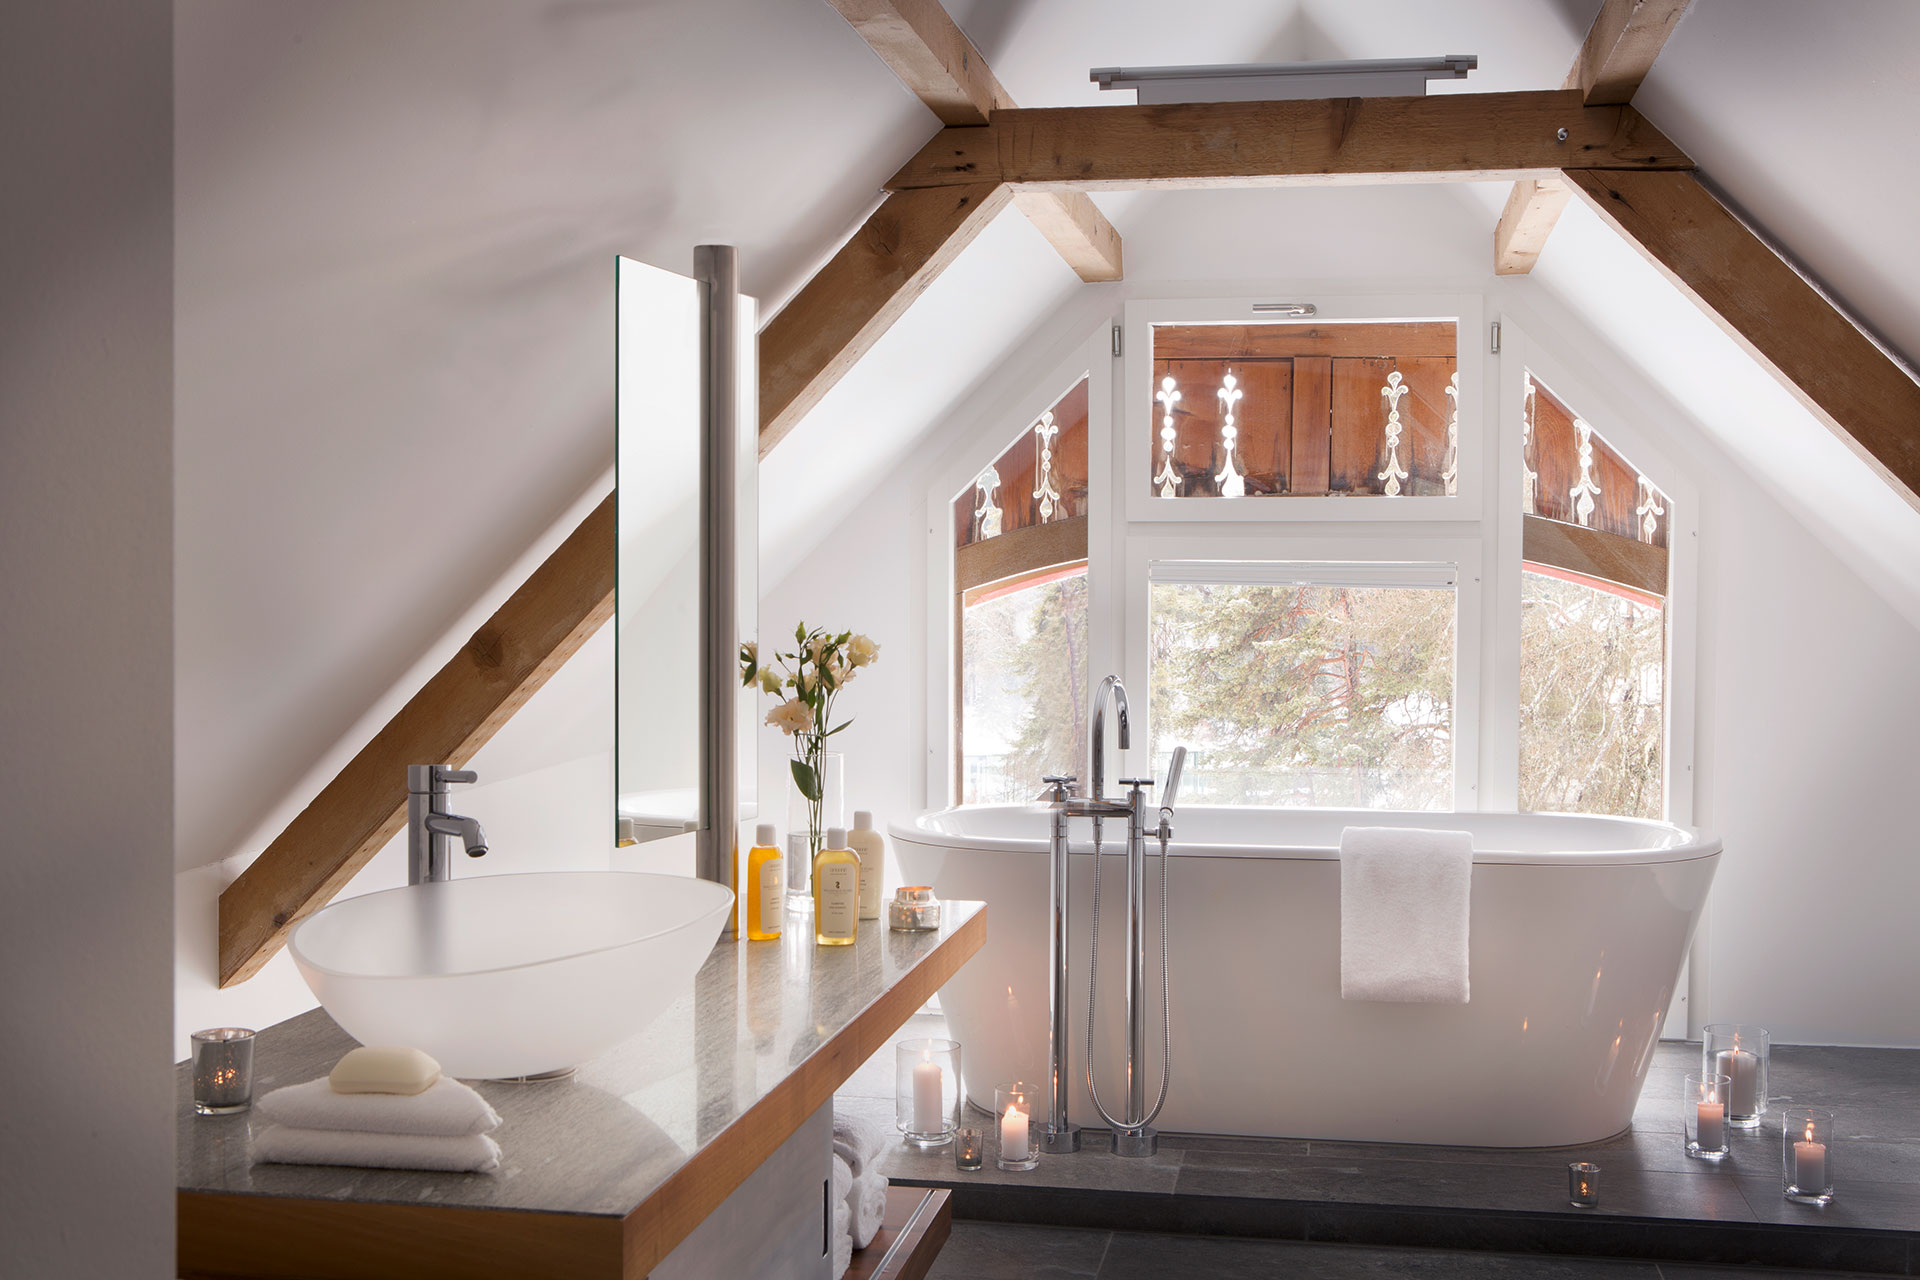 interior shot of a bathroom in a suite. The walls are slanted giving the room a cozy feel. The walls are white and the exposed beams are a light wood. There is a stand alone bathtub overlooking the view of the forest surrounding the property. The sink and mirror rests on a light wood countertop. There are candles and toiletries placed around the room